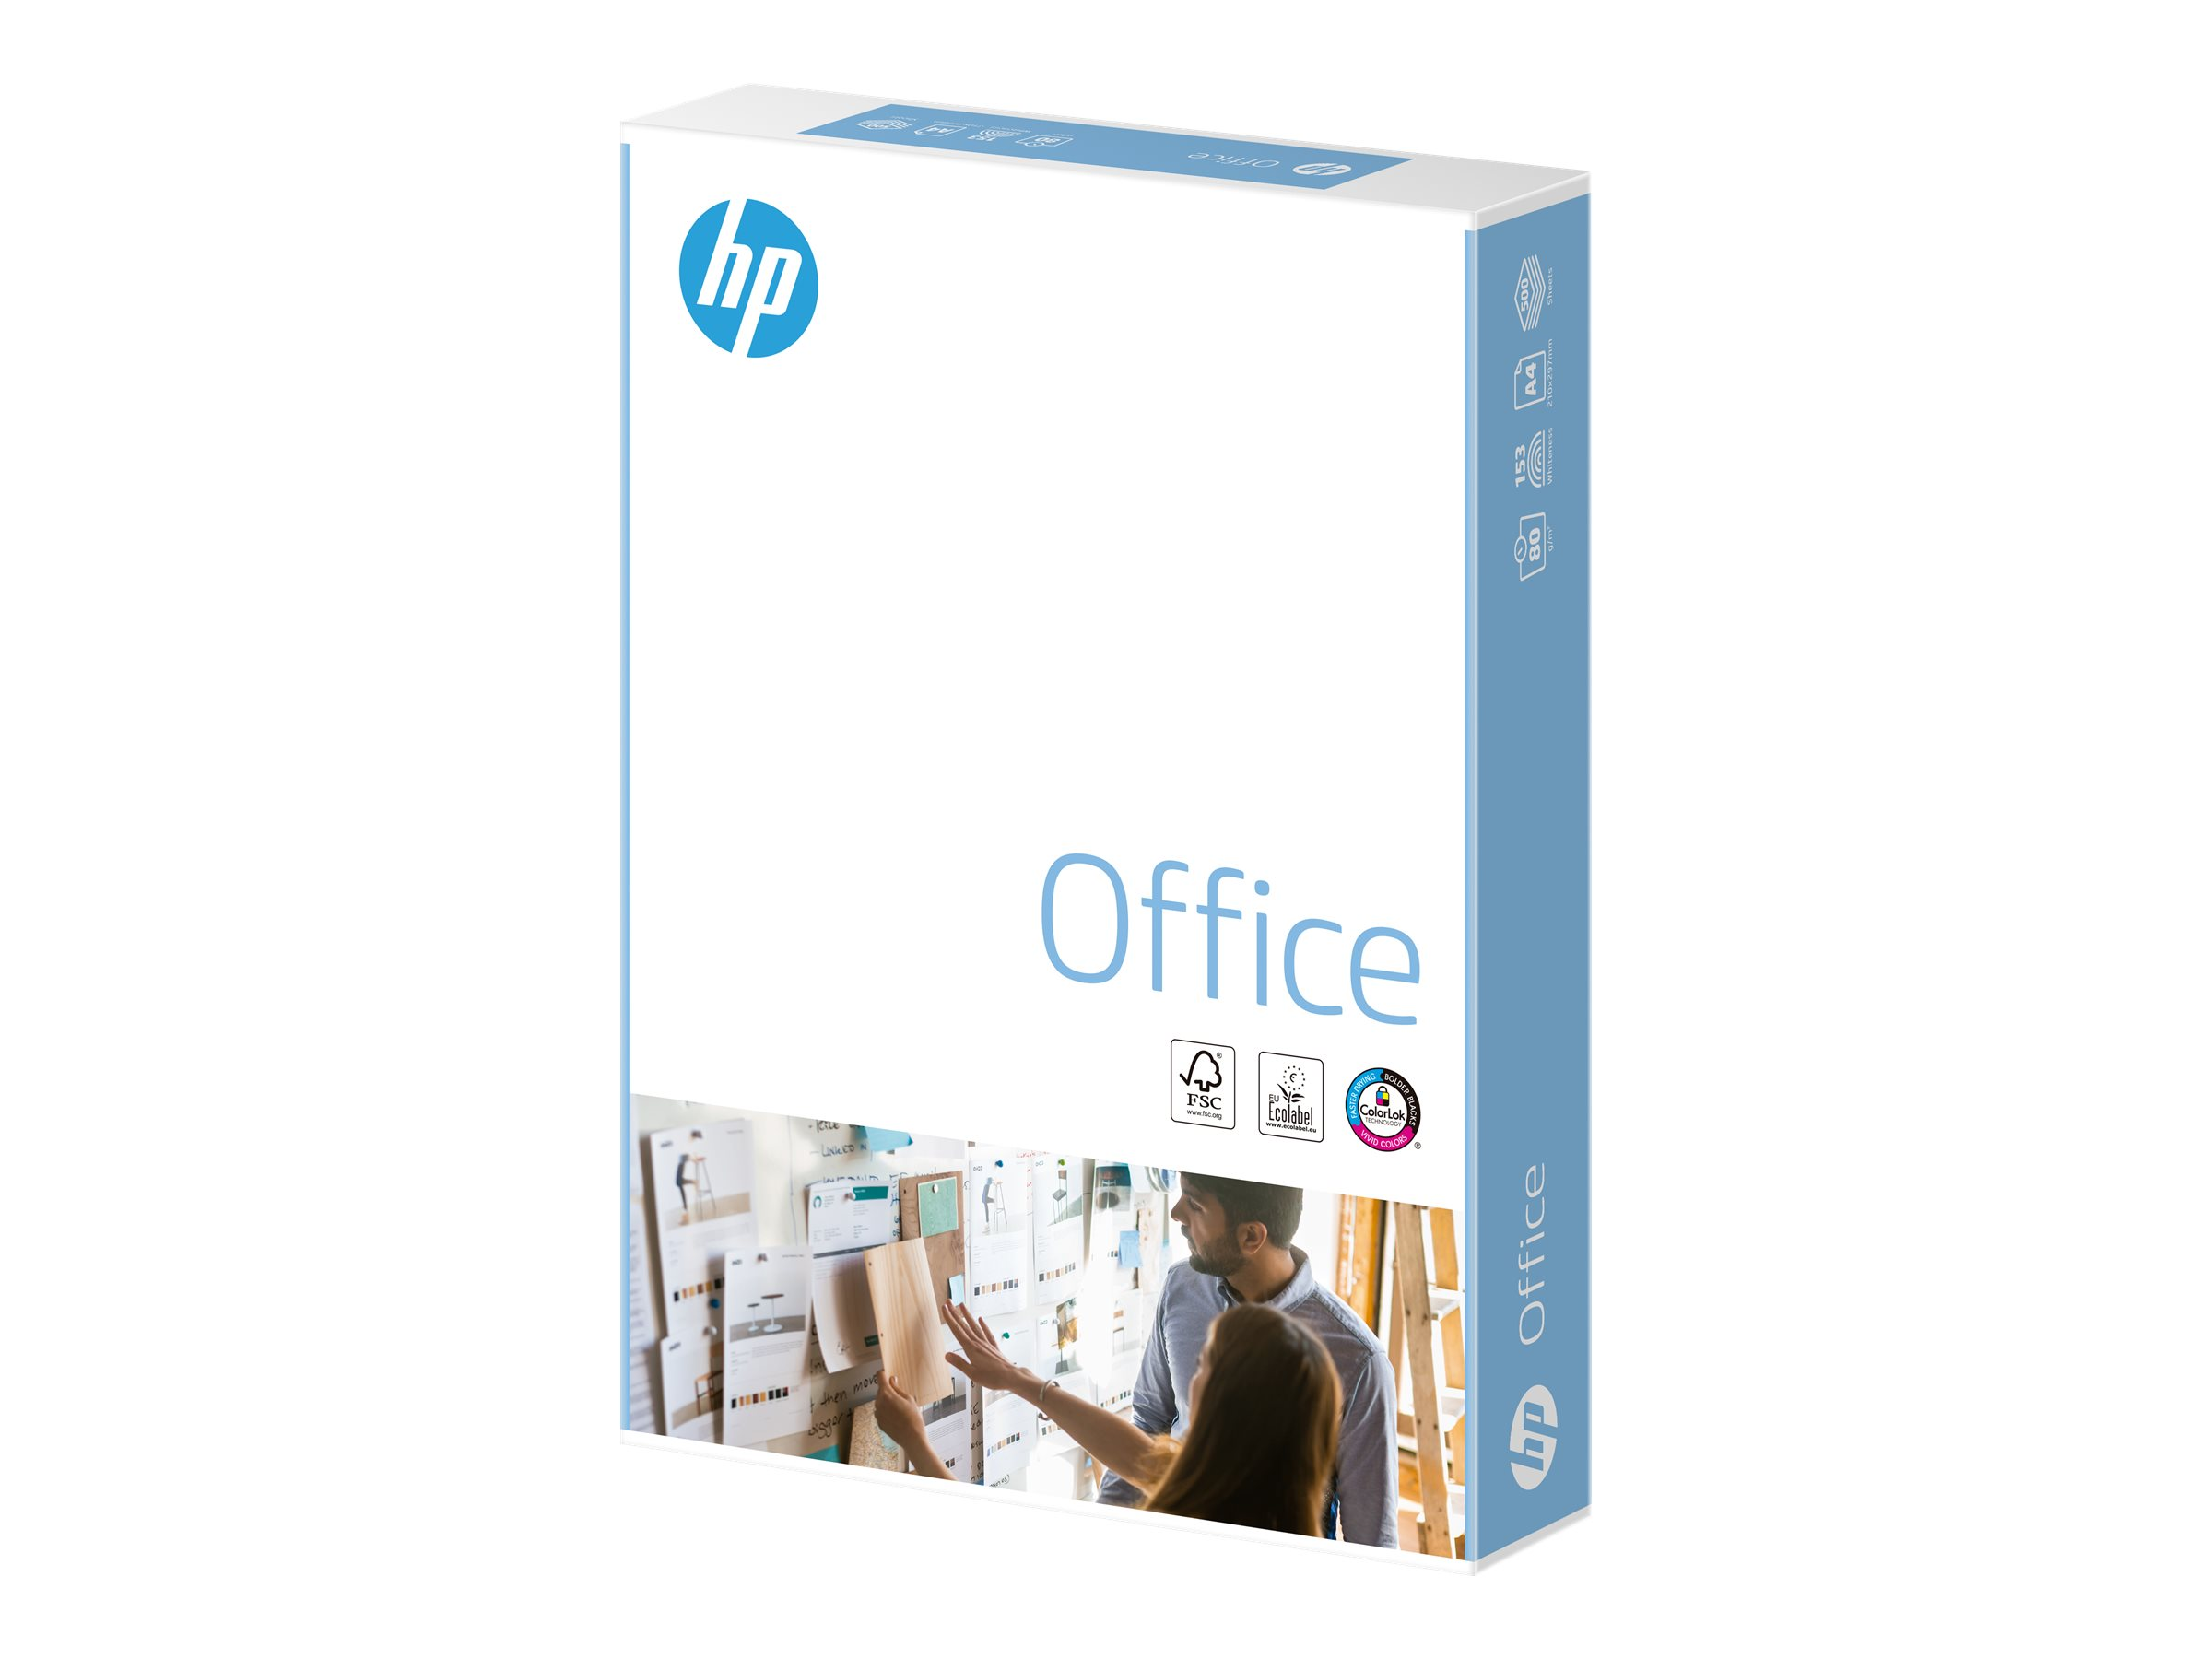 HP Office Paper - A4 (210 x 297 mm) - 80 g/m²